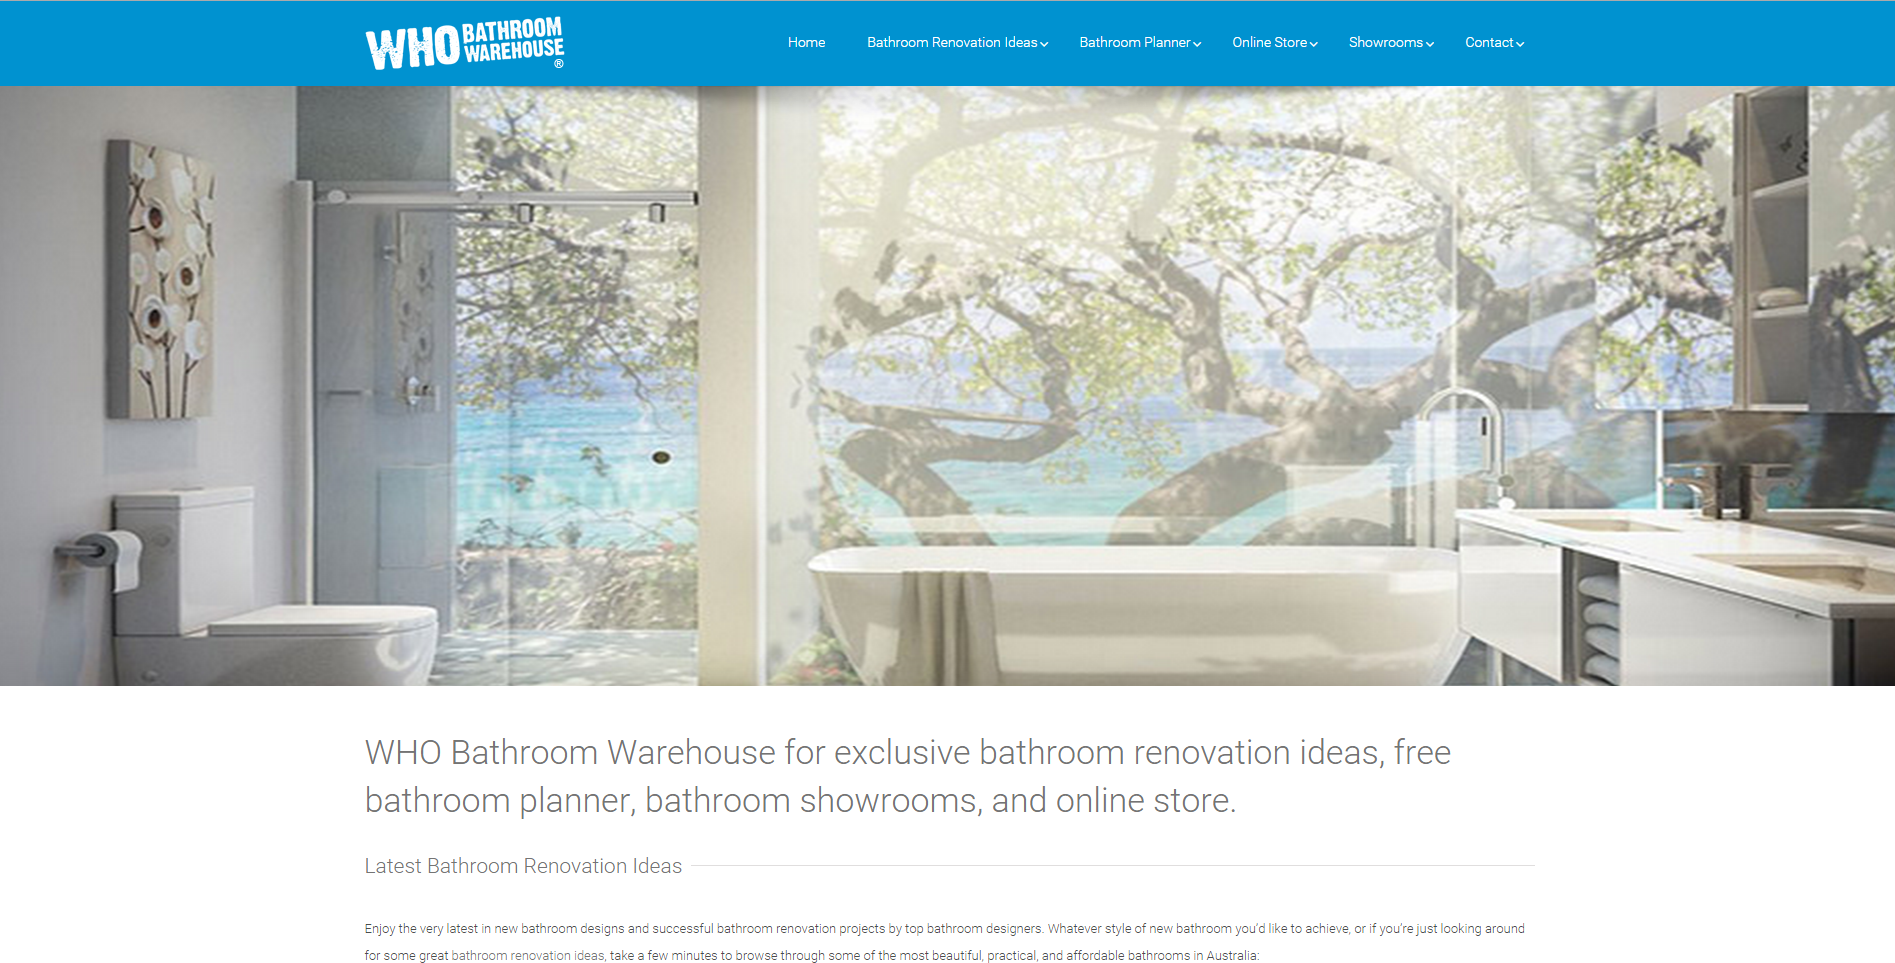 WHO Bathroom Warehouse home page